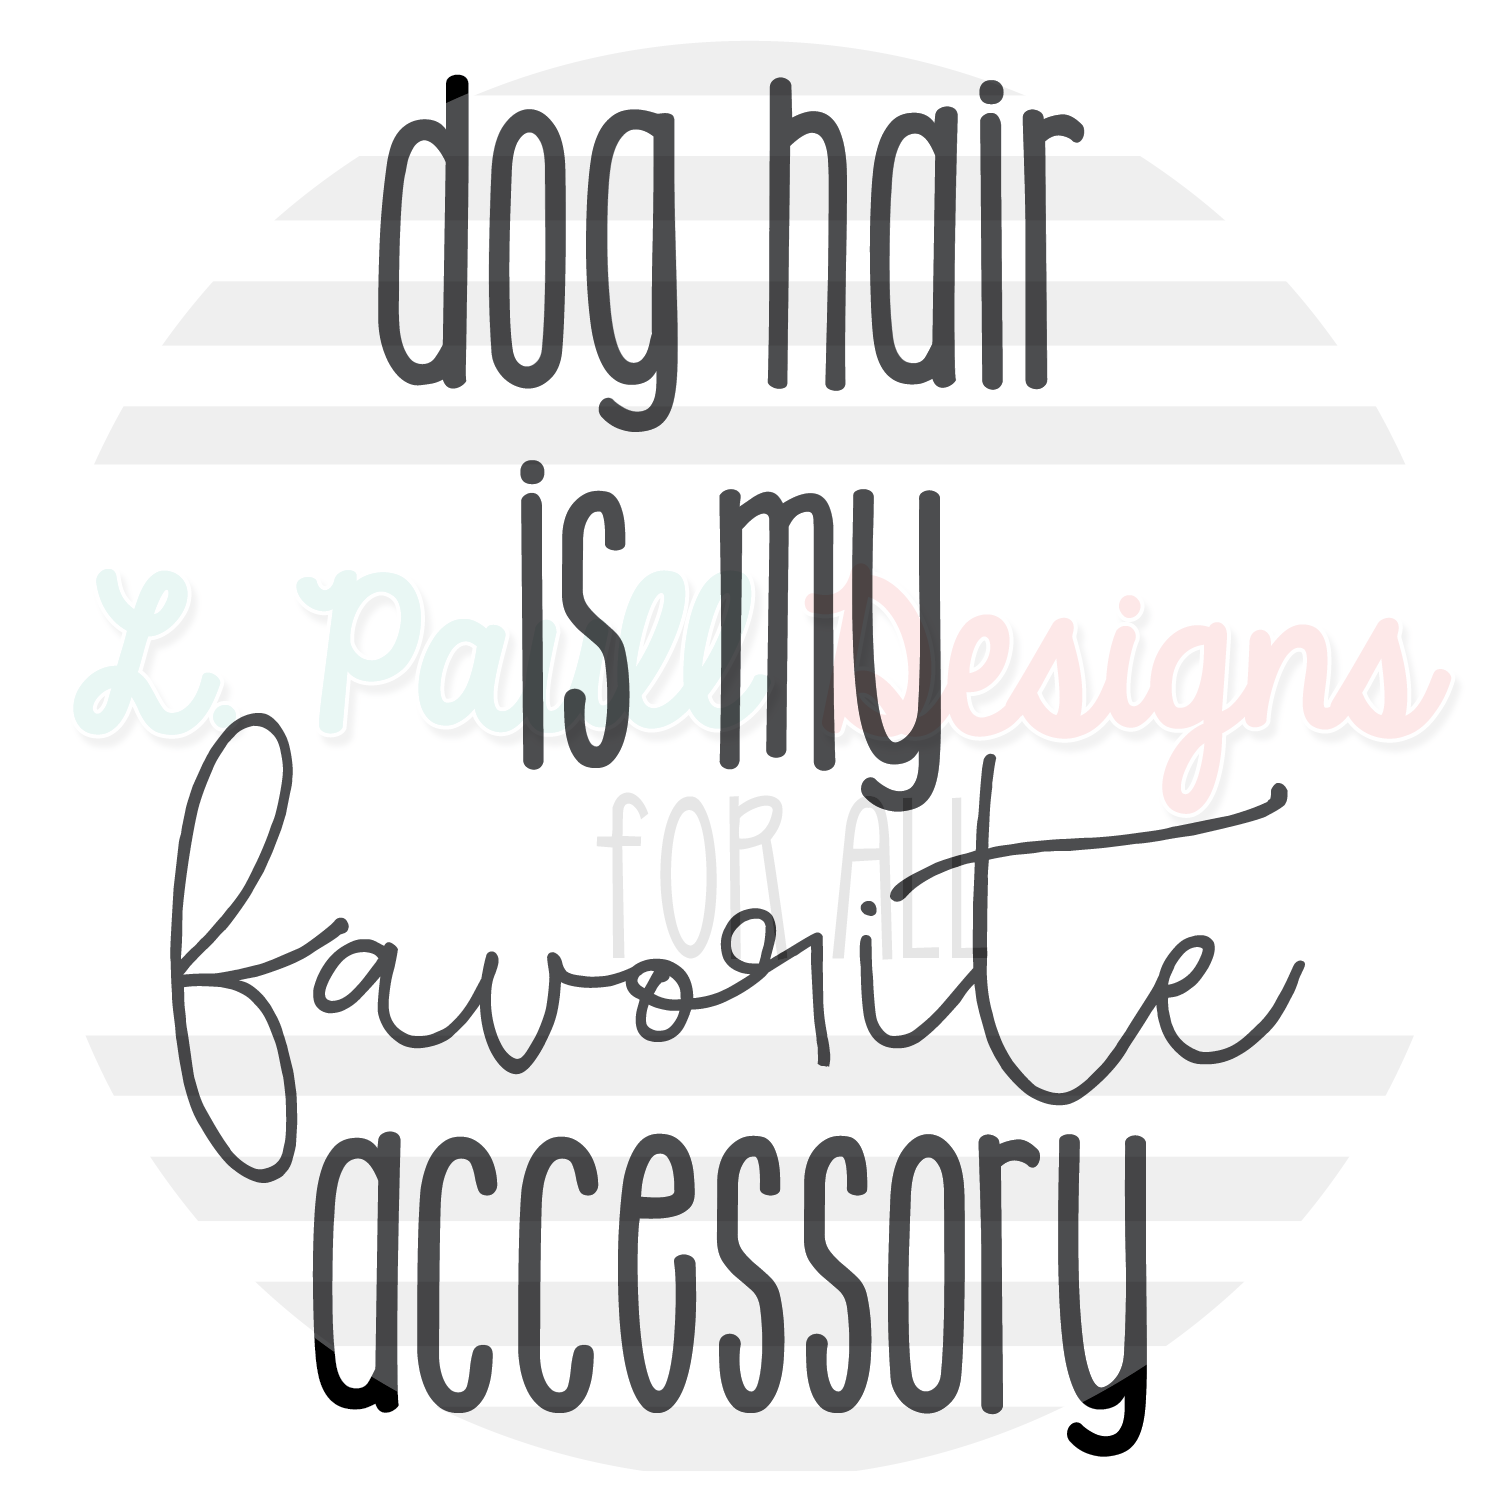 Dog hair is my favorite accessory